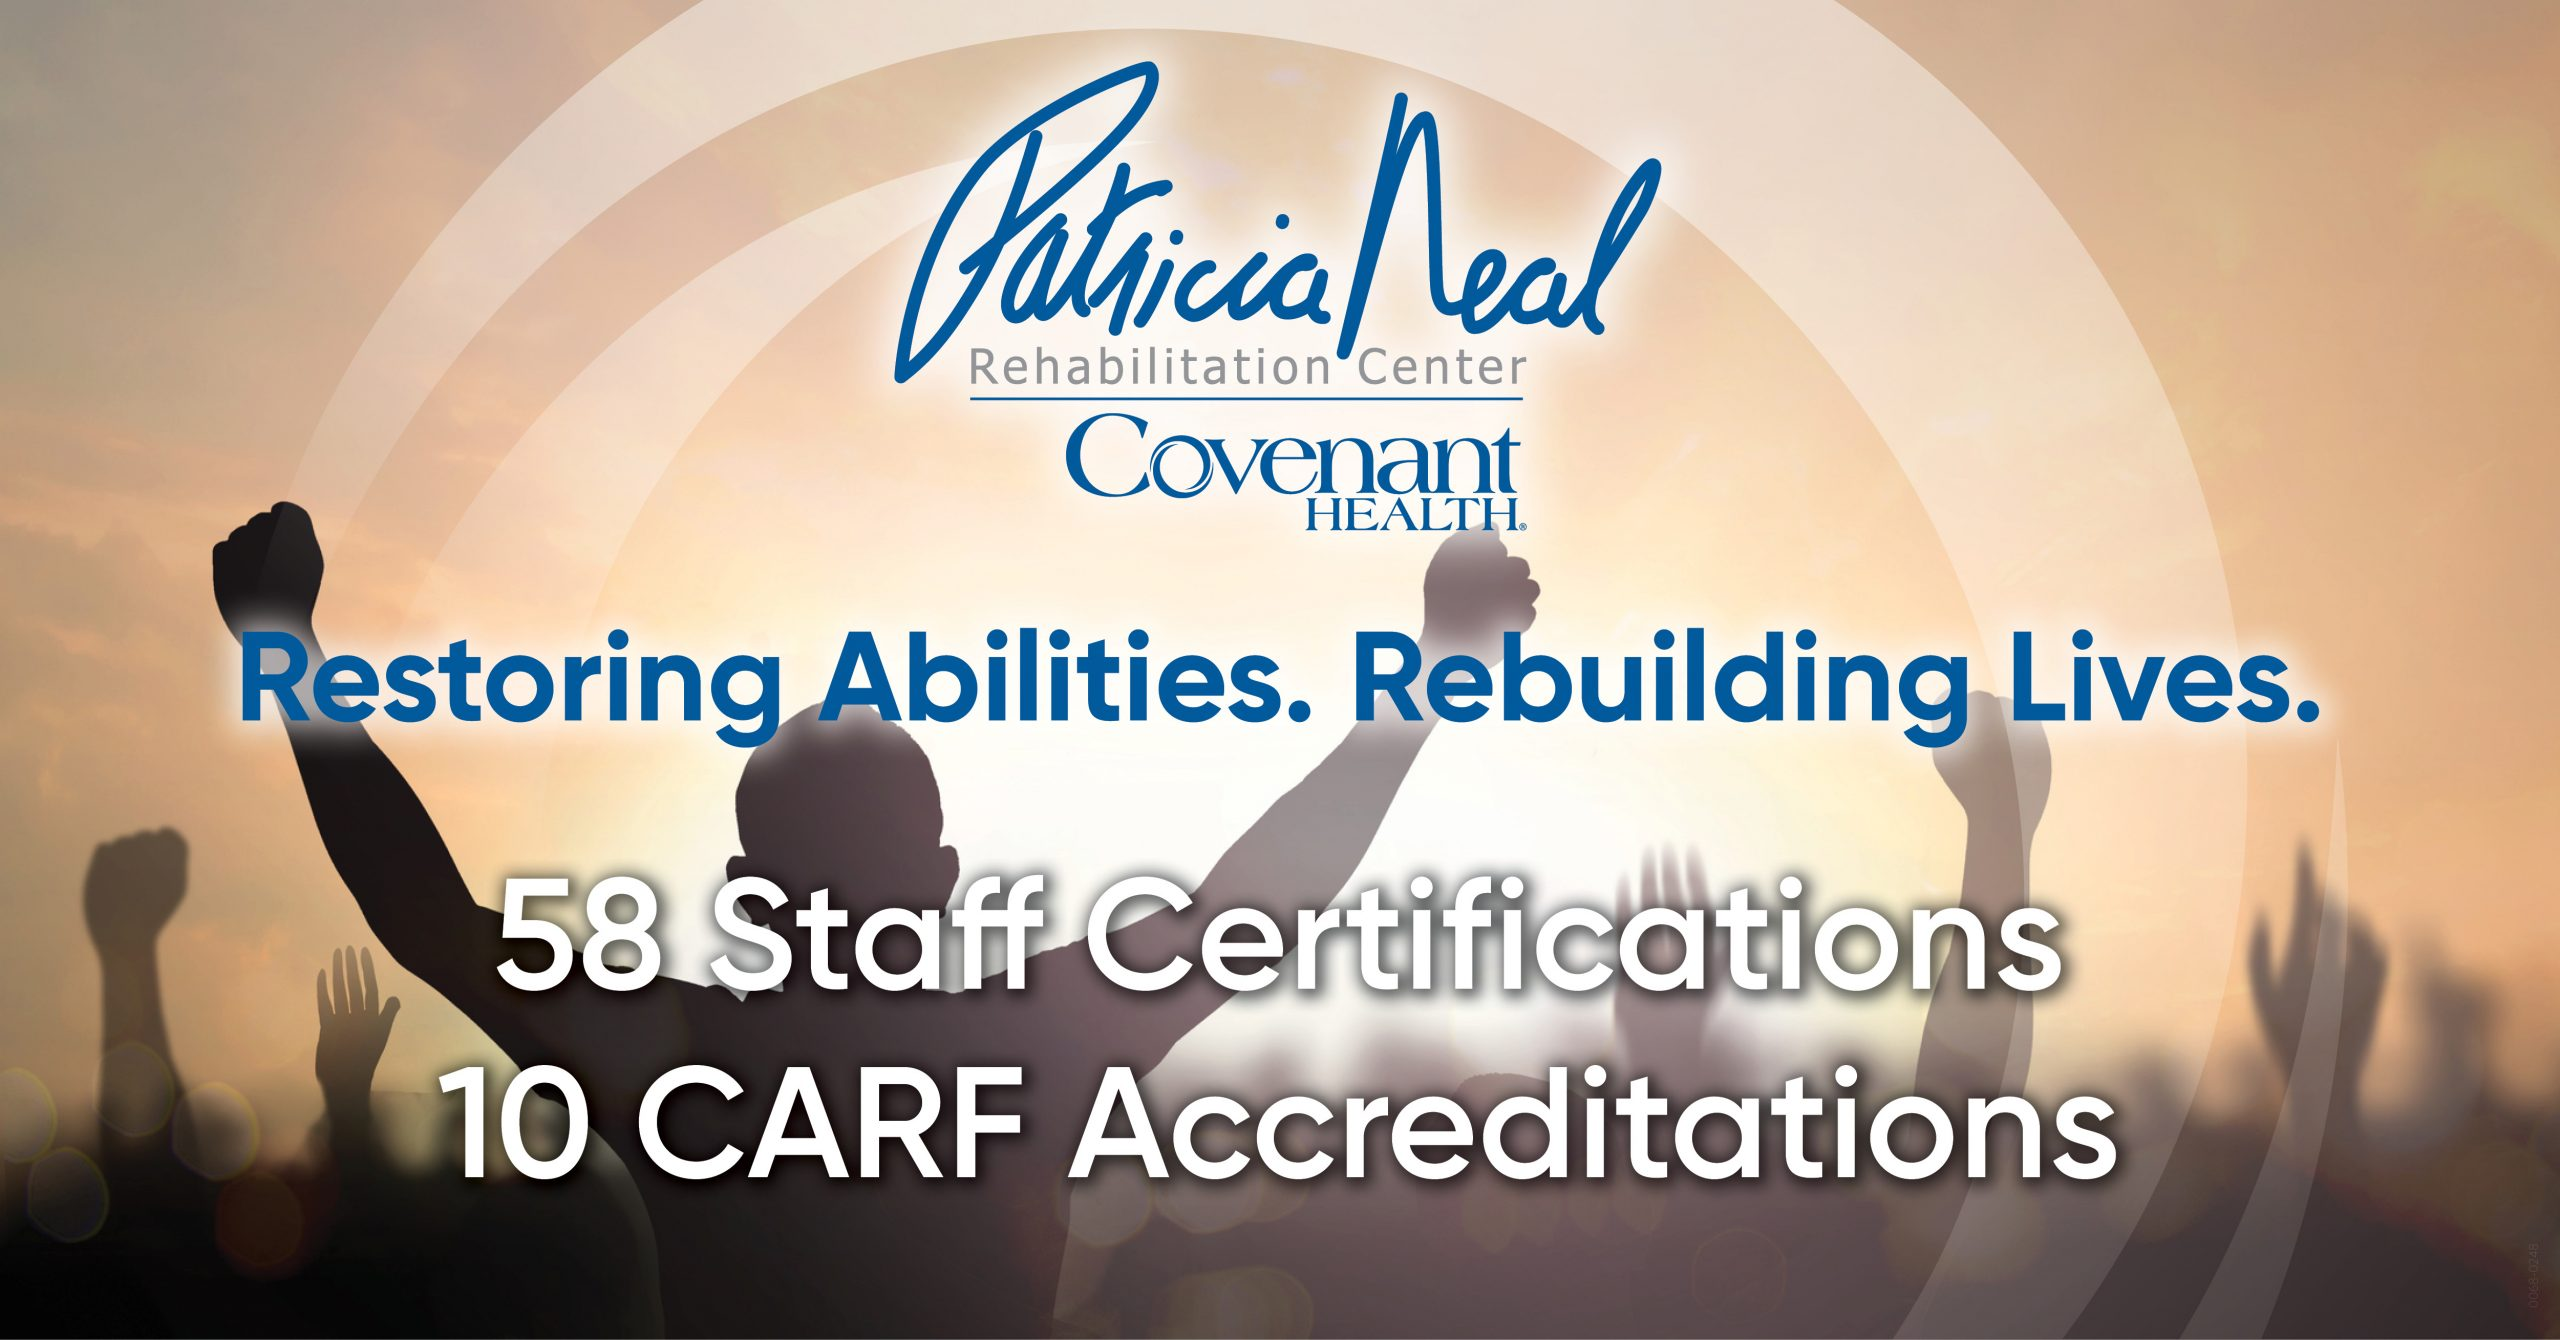 58 staff certifications and 10 CARF accreditations